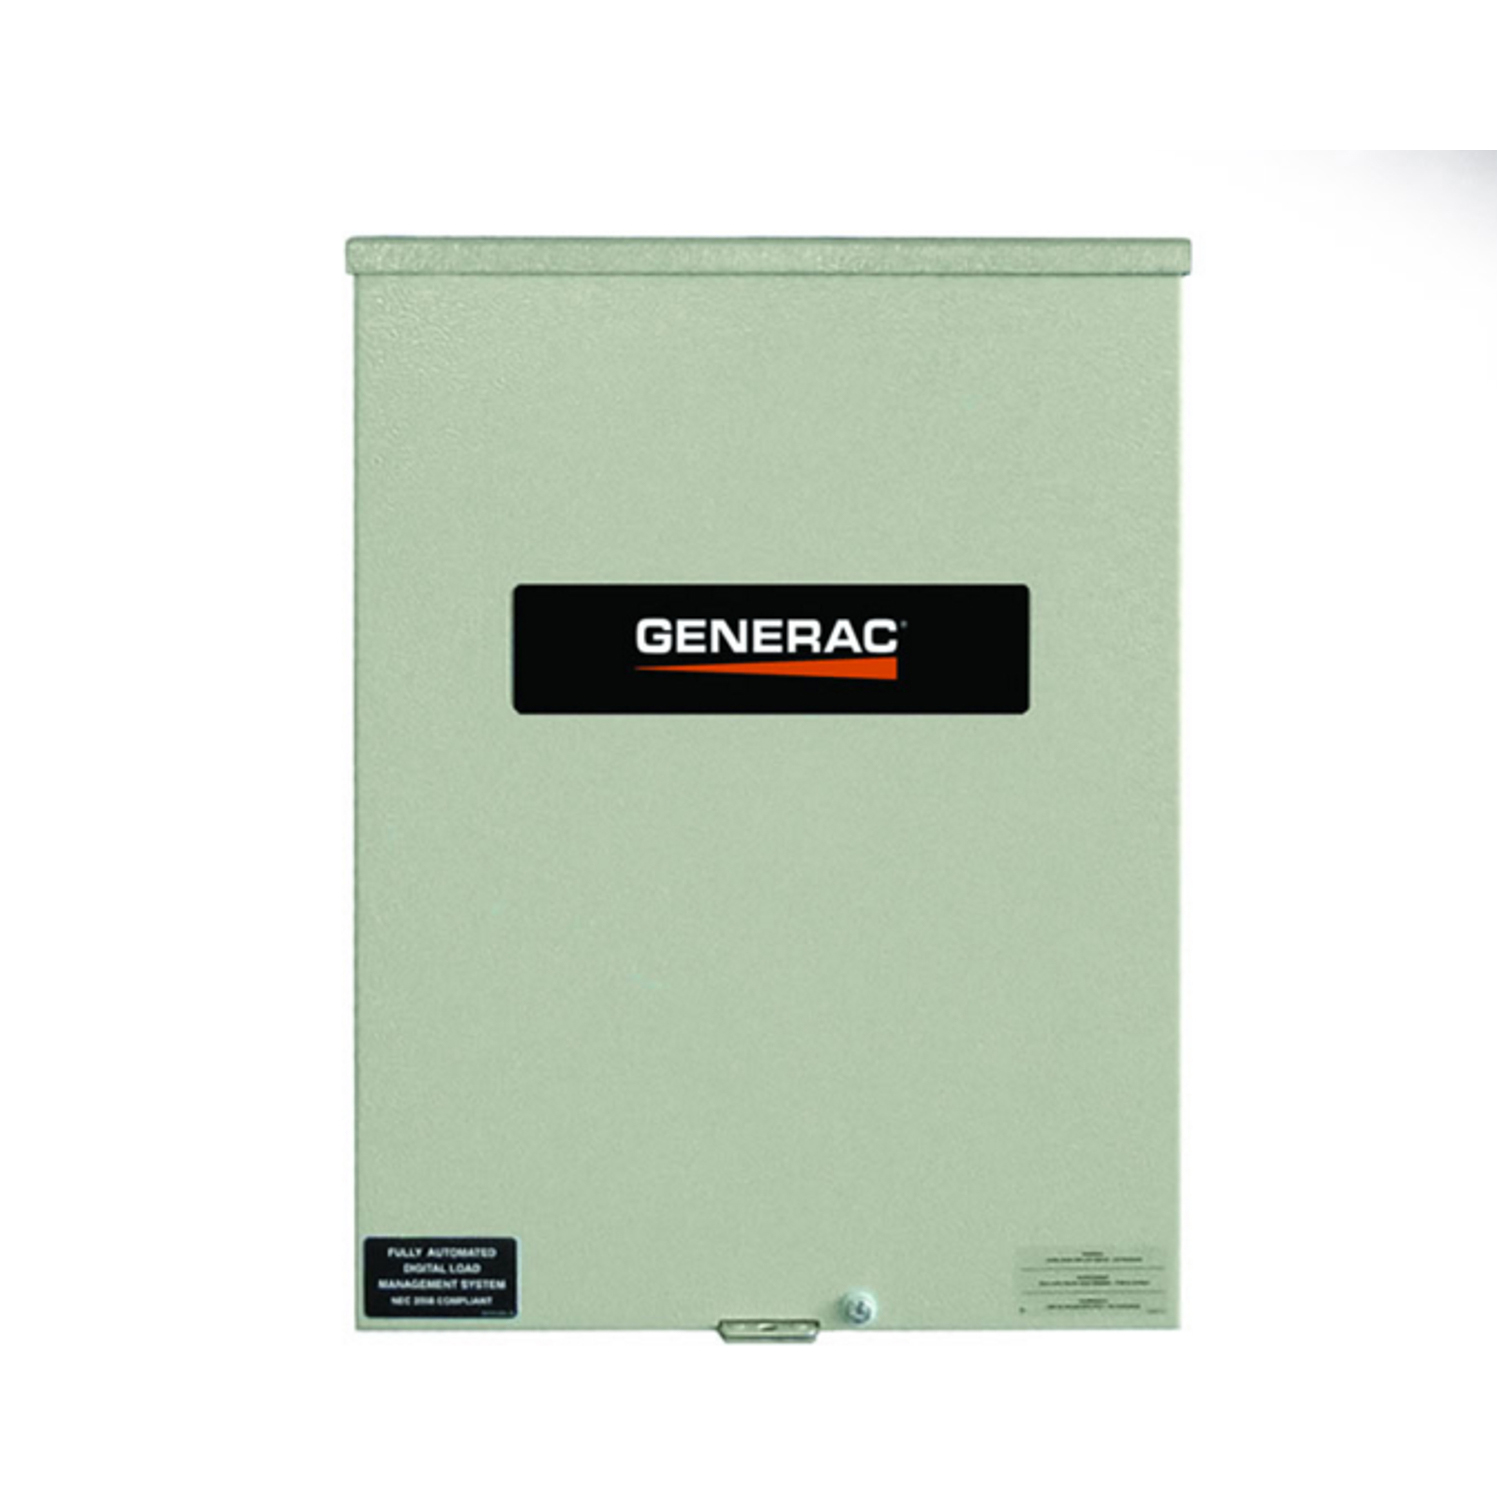 Generac Transfer Switch RTSW200A3